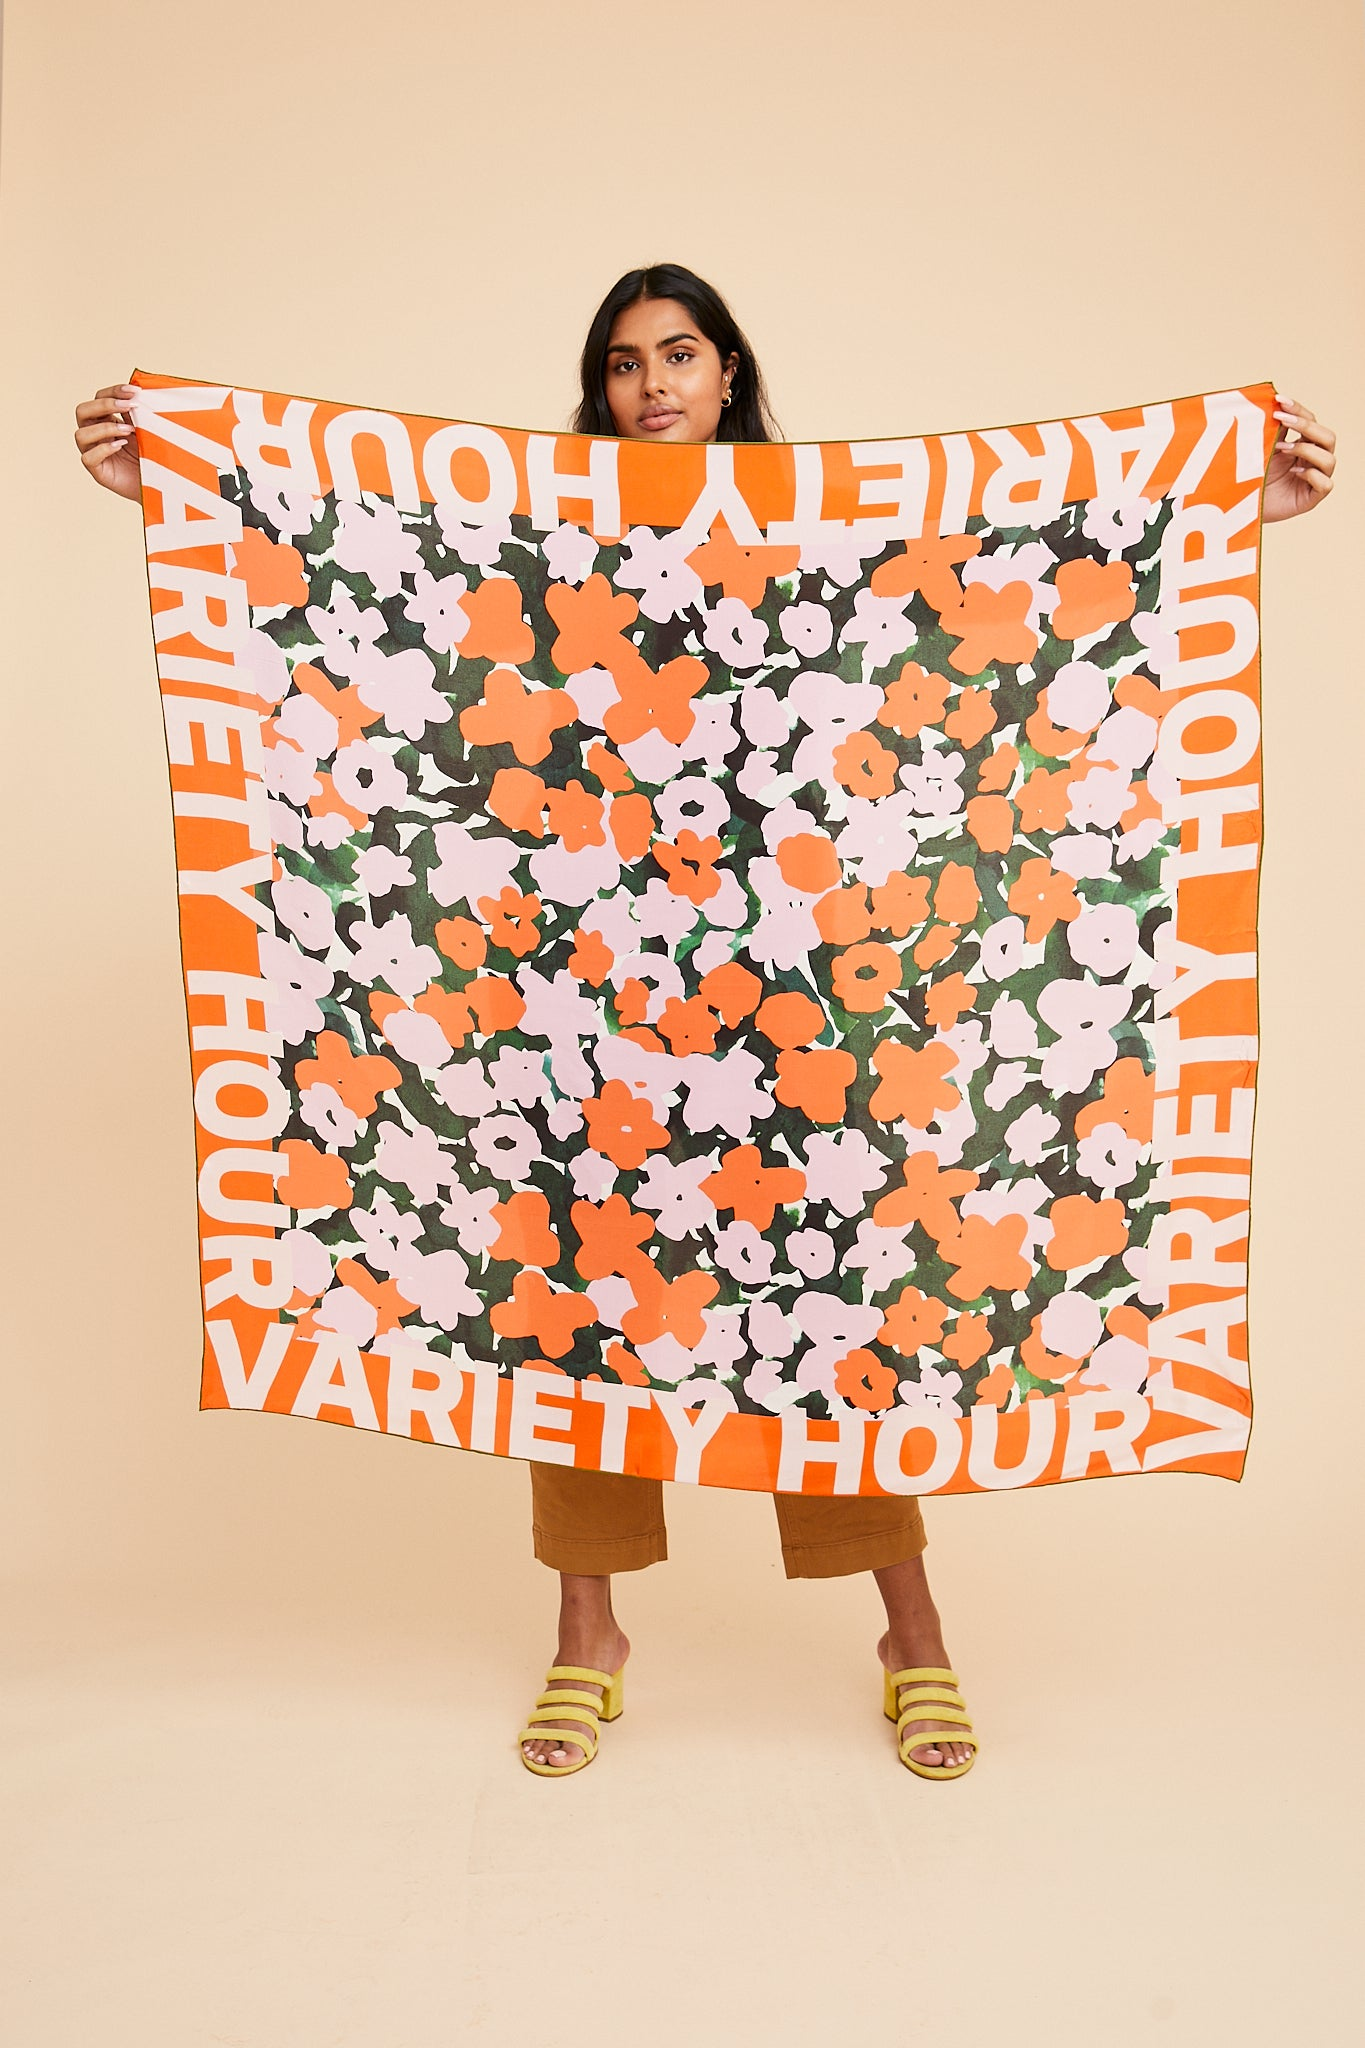 Variety Hour Silk Scarf in Hedge Print, Designed by Cassie Byrnes